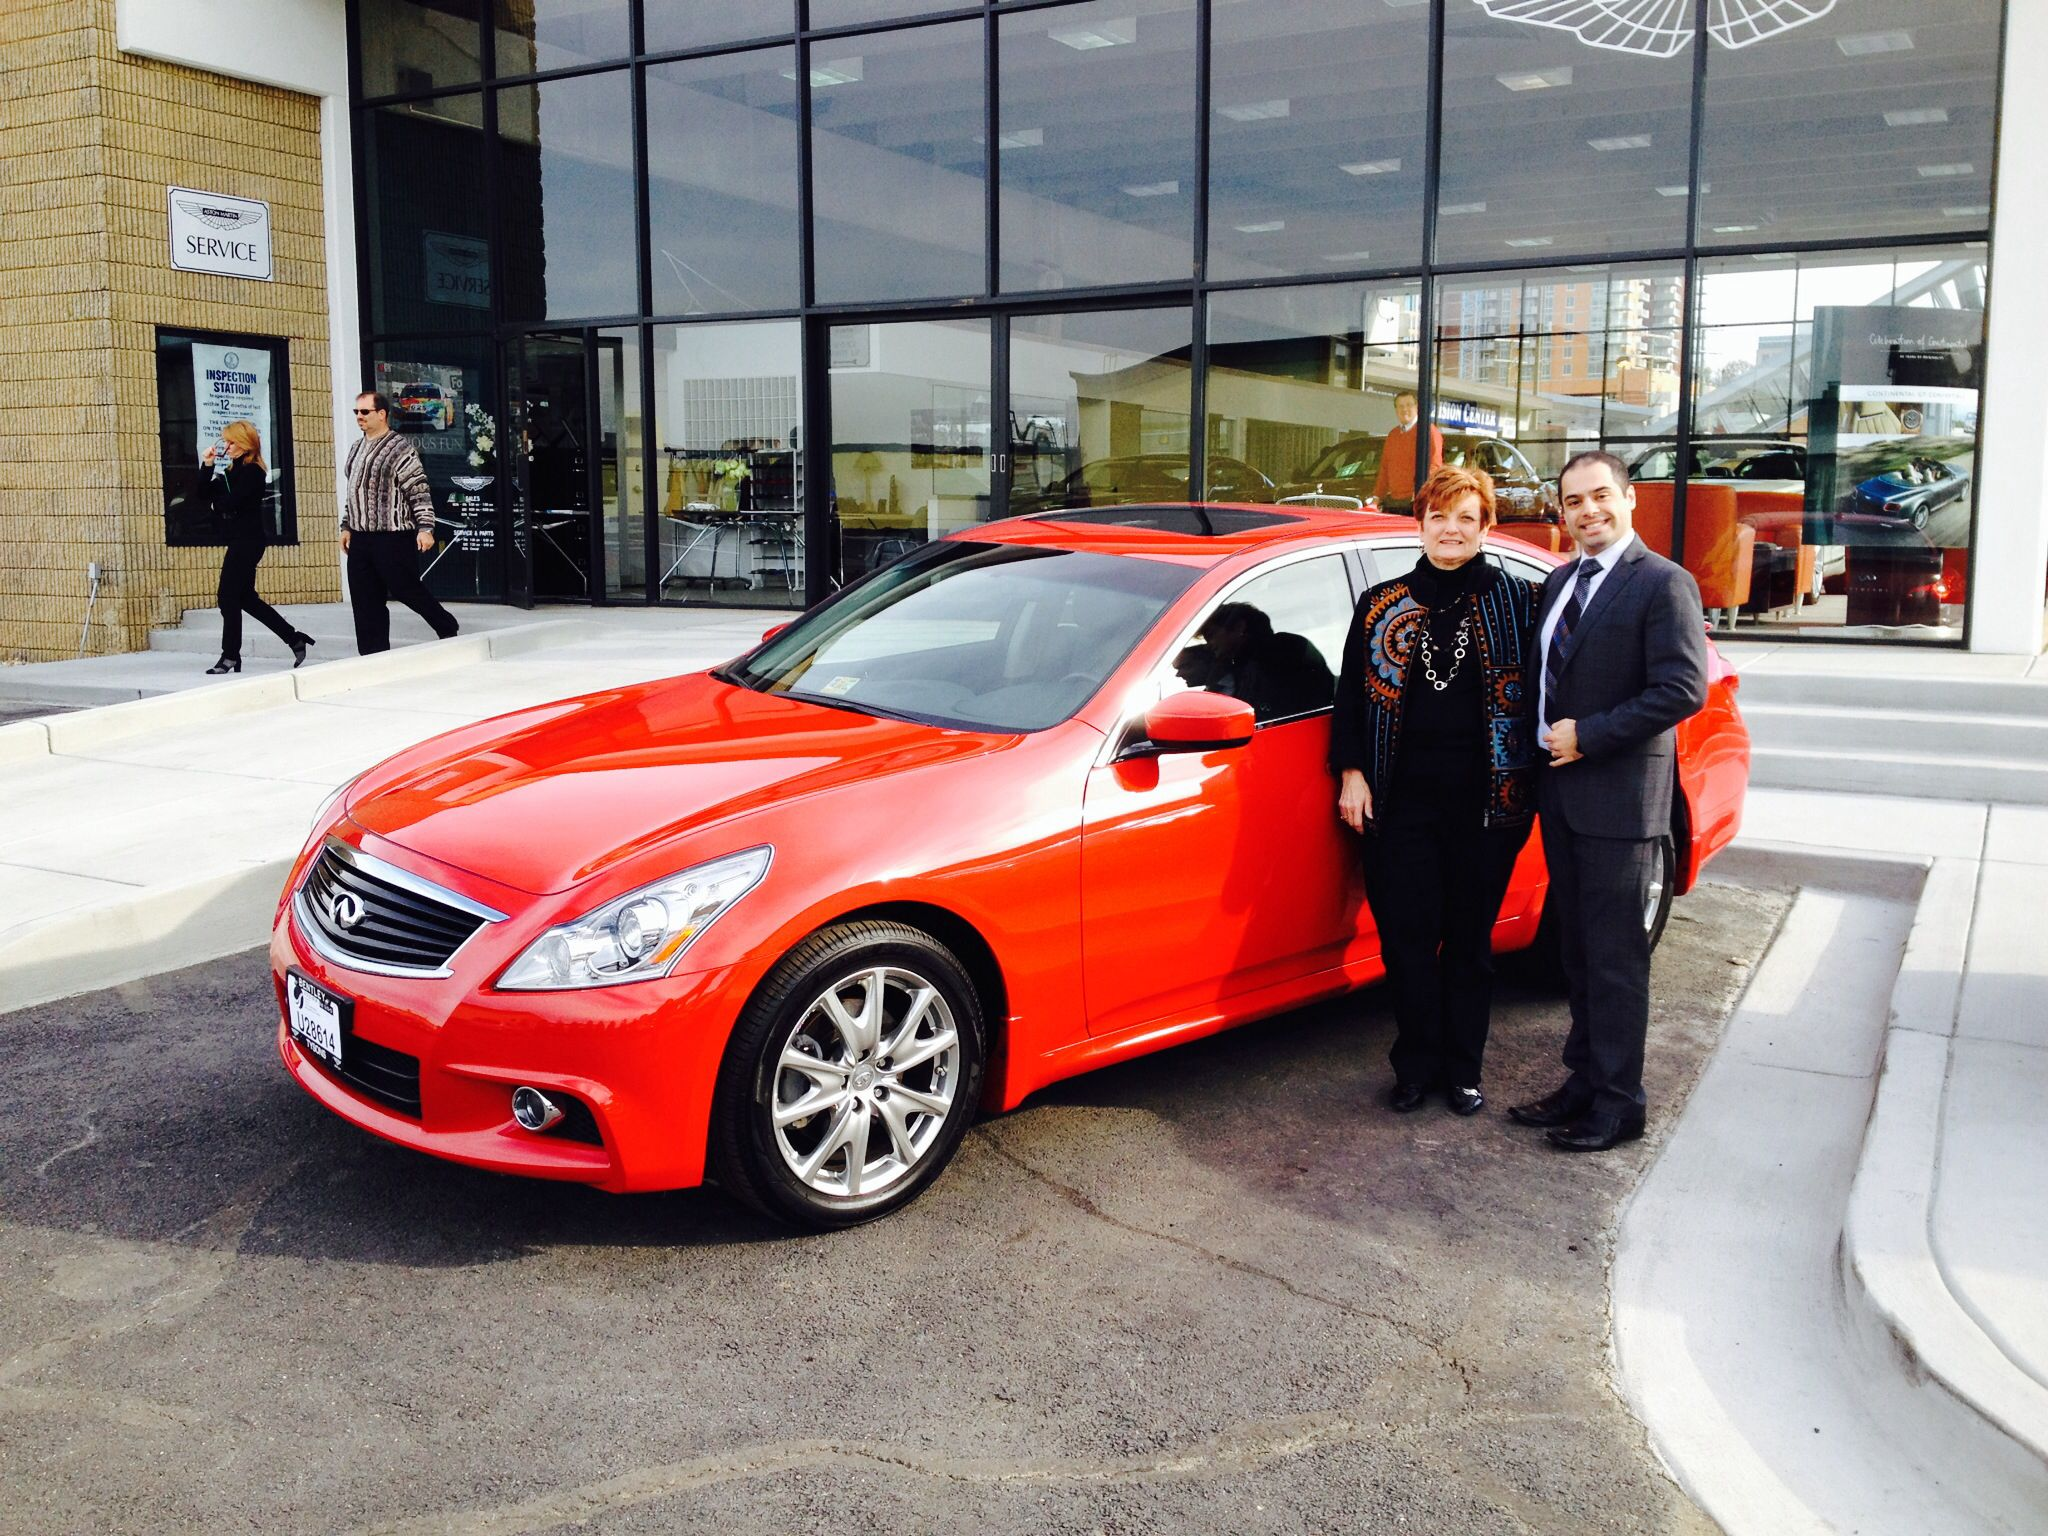 Mrs. Pizzano on left taking delivery of her first Infiniti